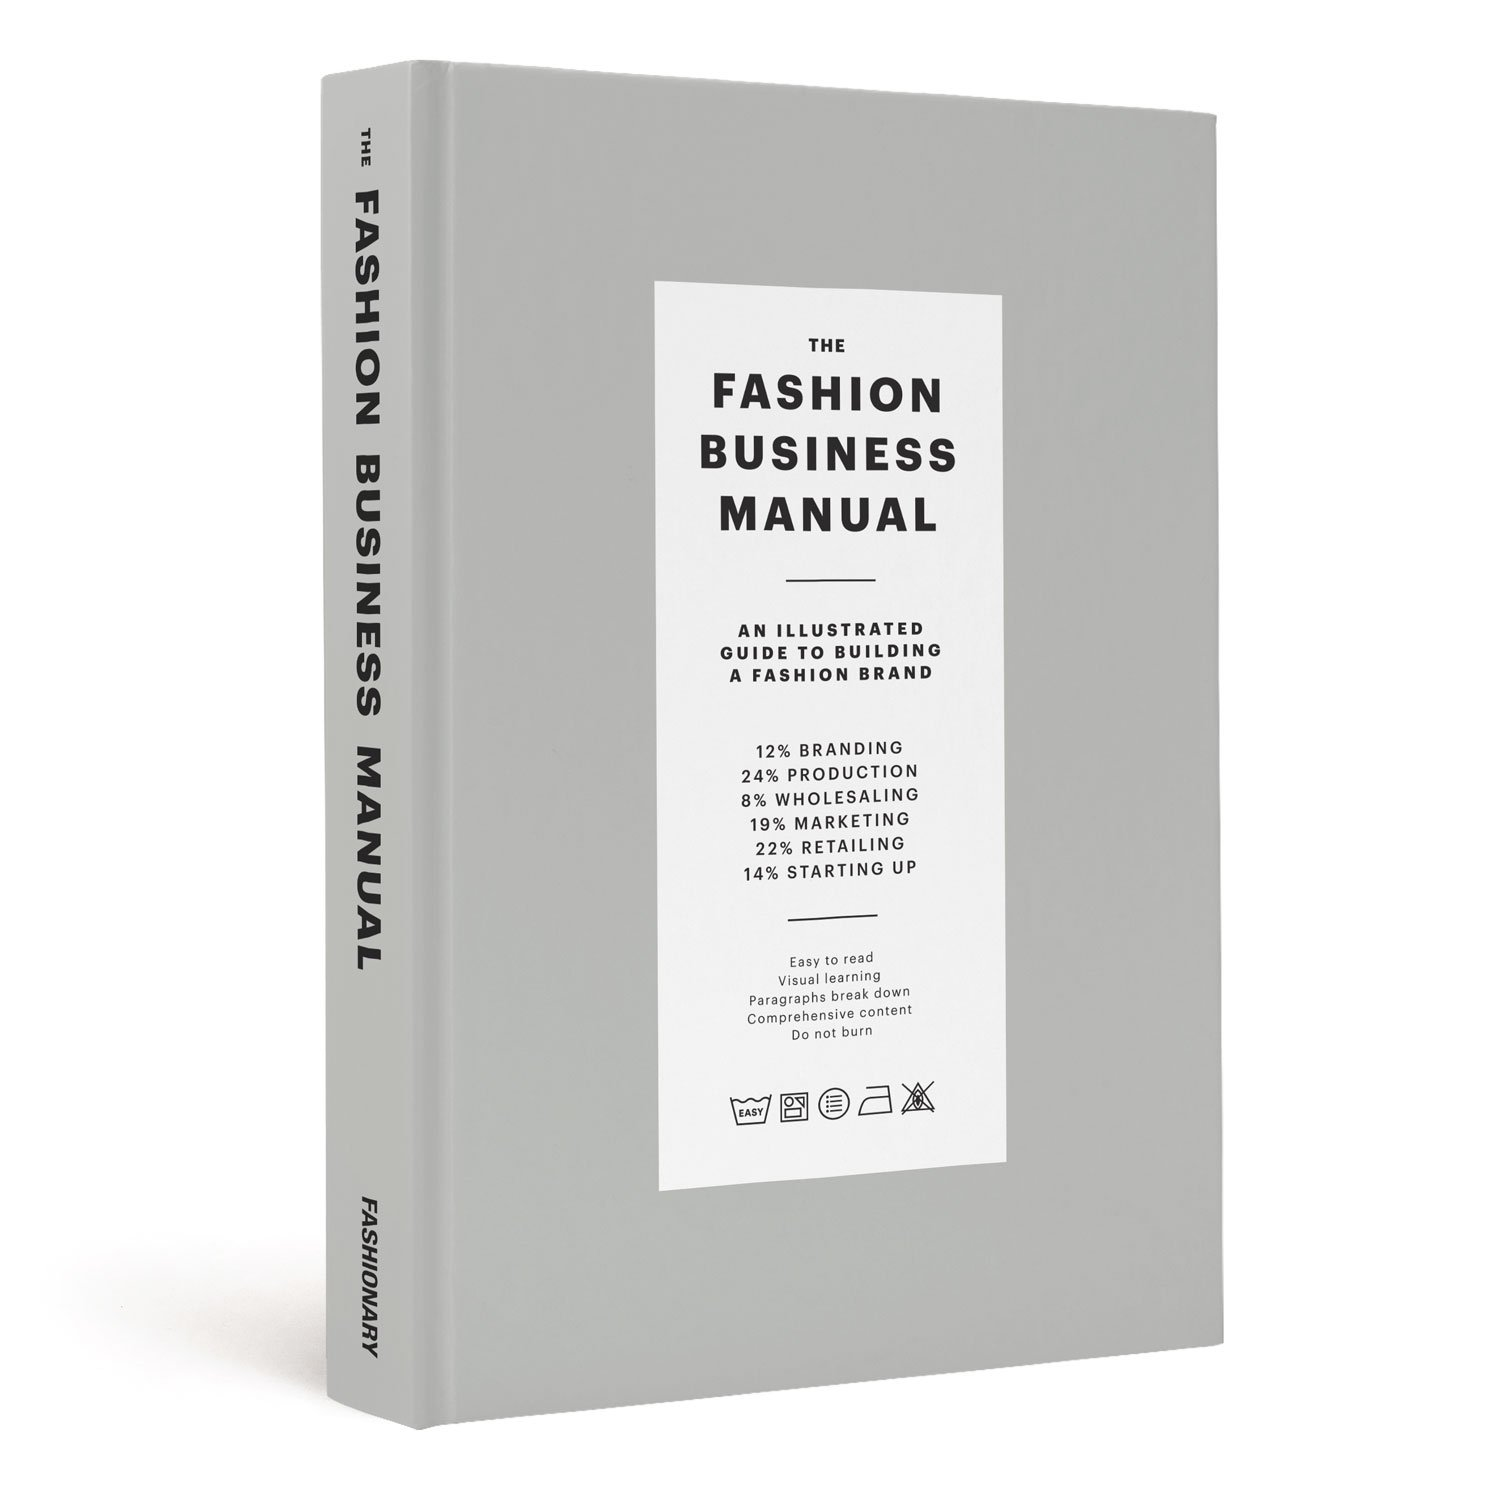 5 Great Gifts For Fashion Designers